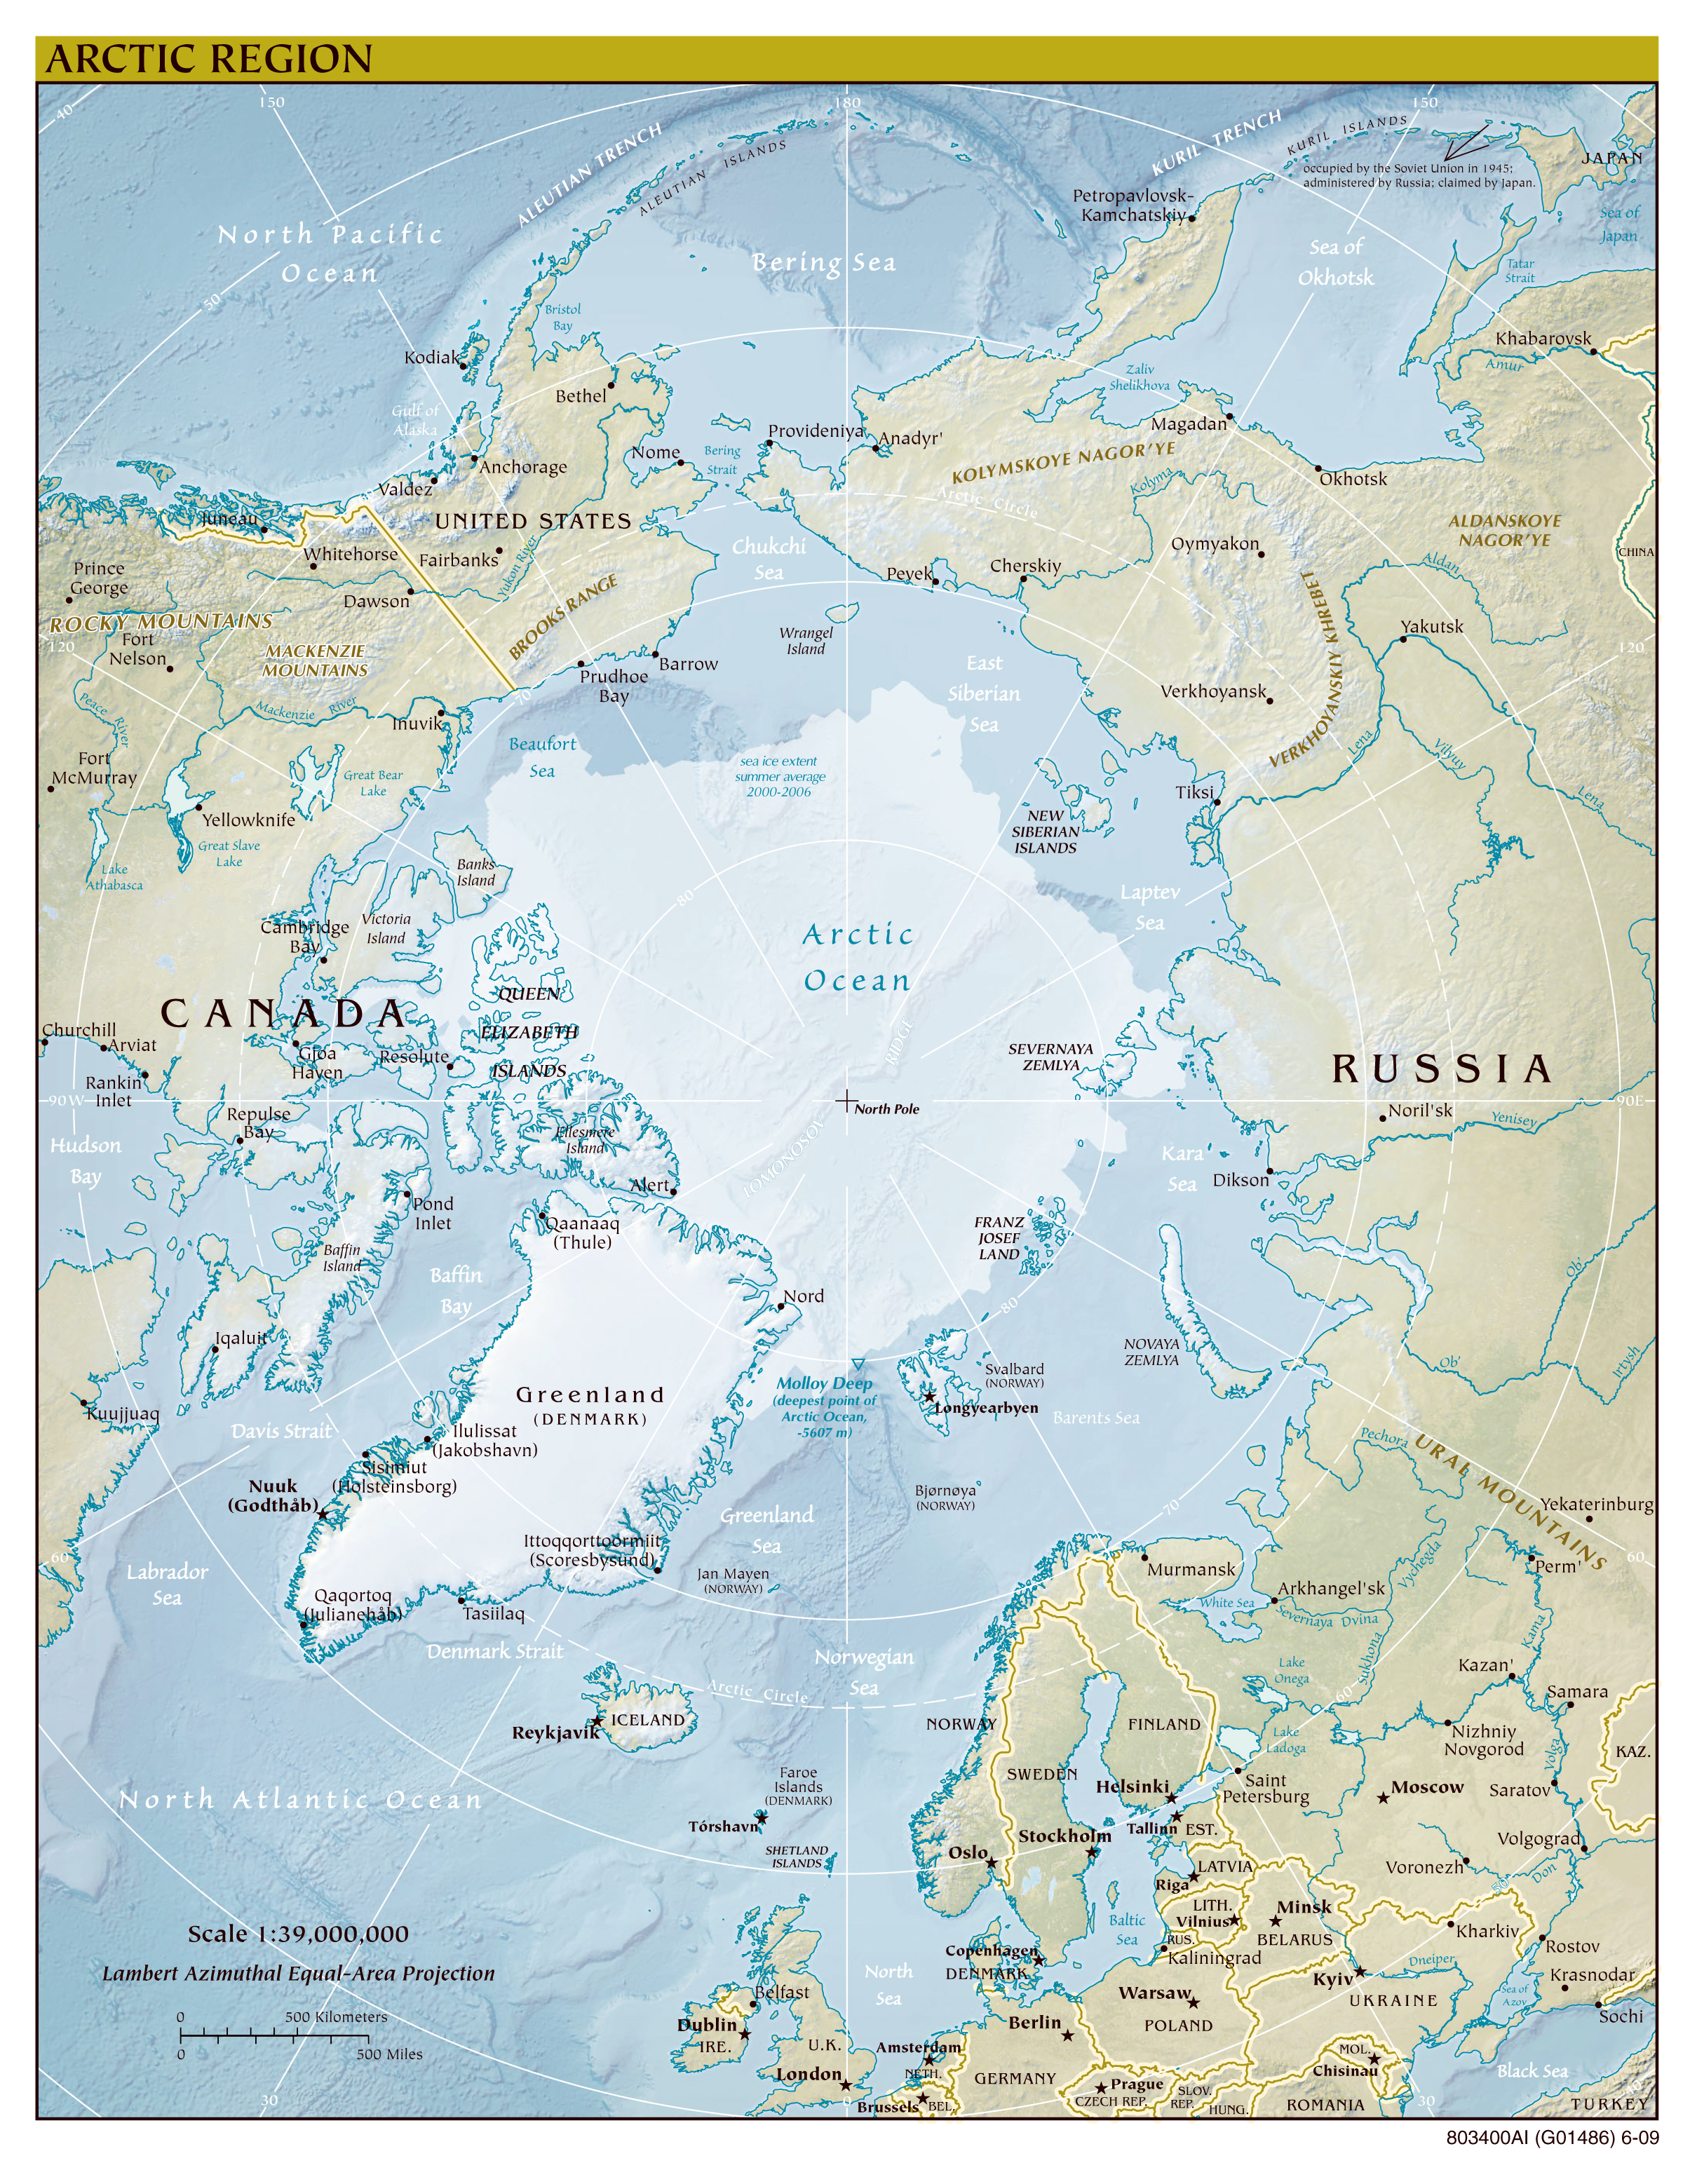 Large scale political map of Arctic Region with relief 2009